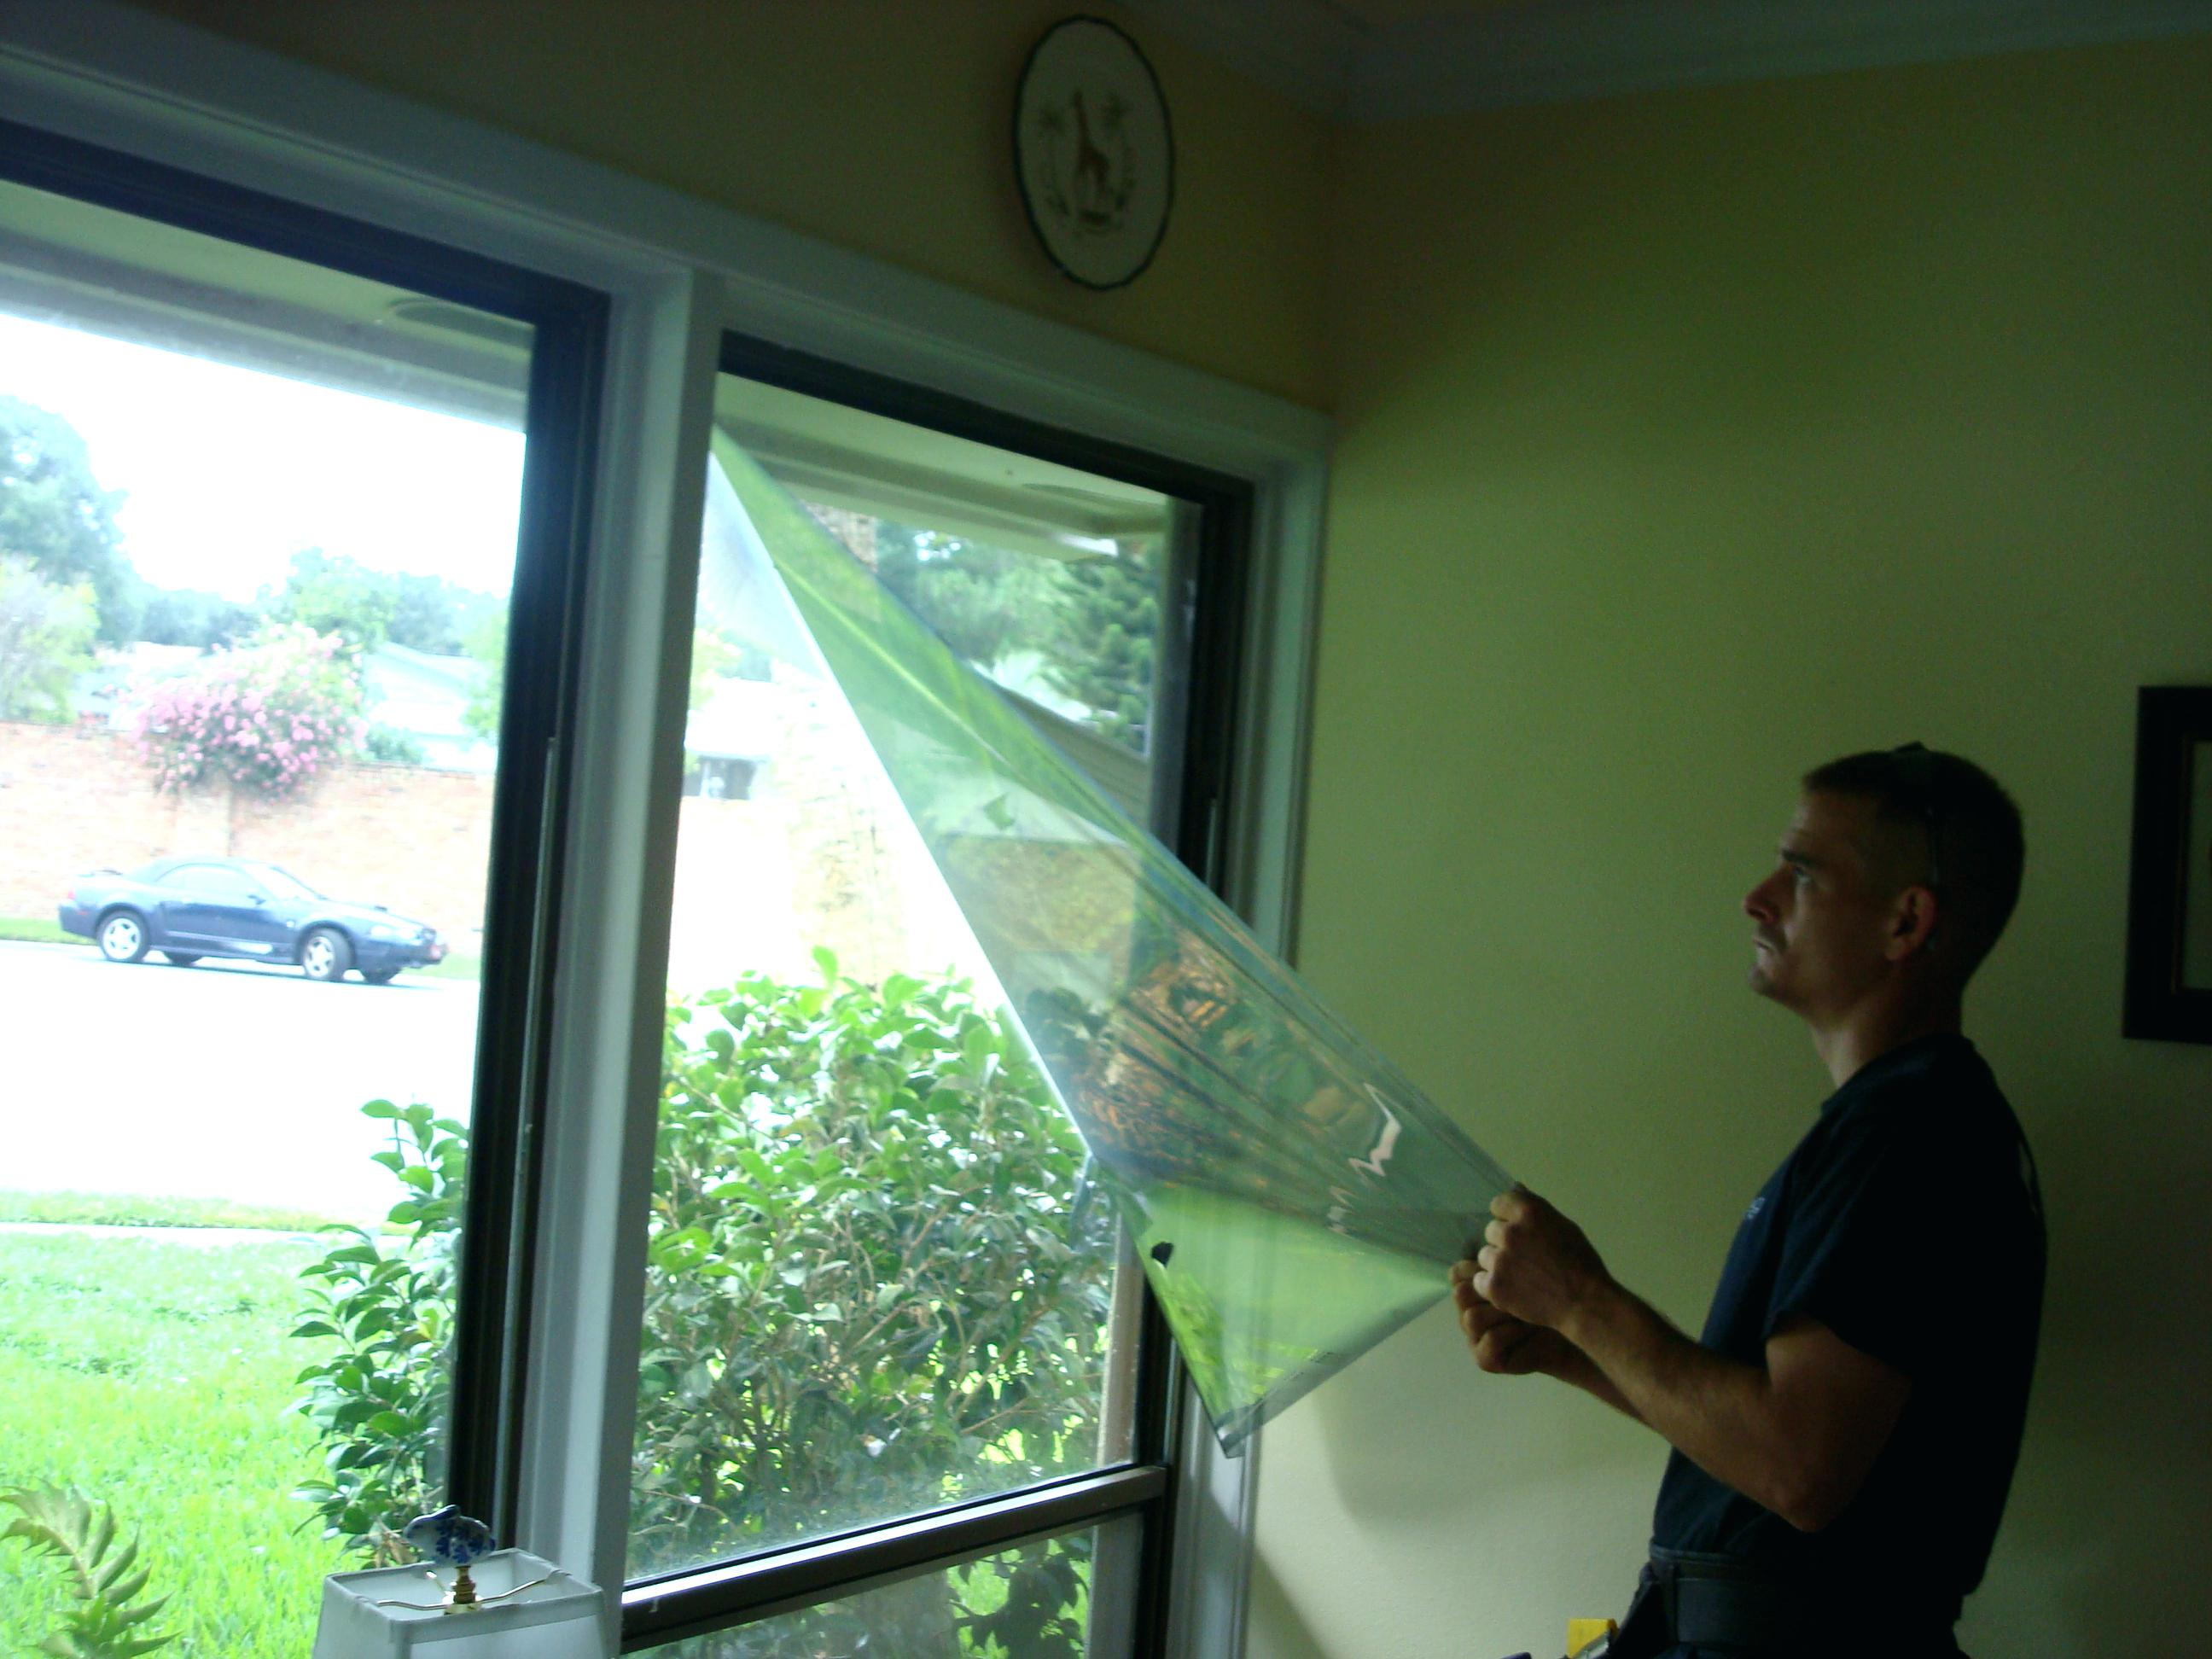 House Window Tint Home Depot | Stained Glass Window Tint | Window Film Home Depot